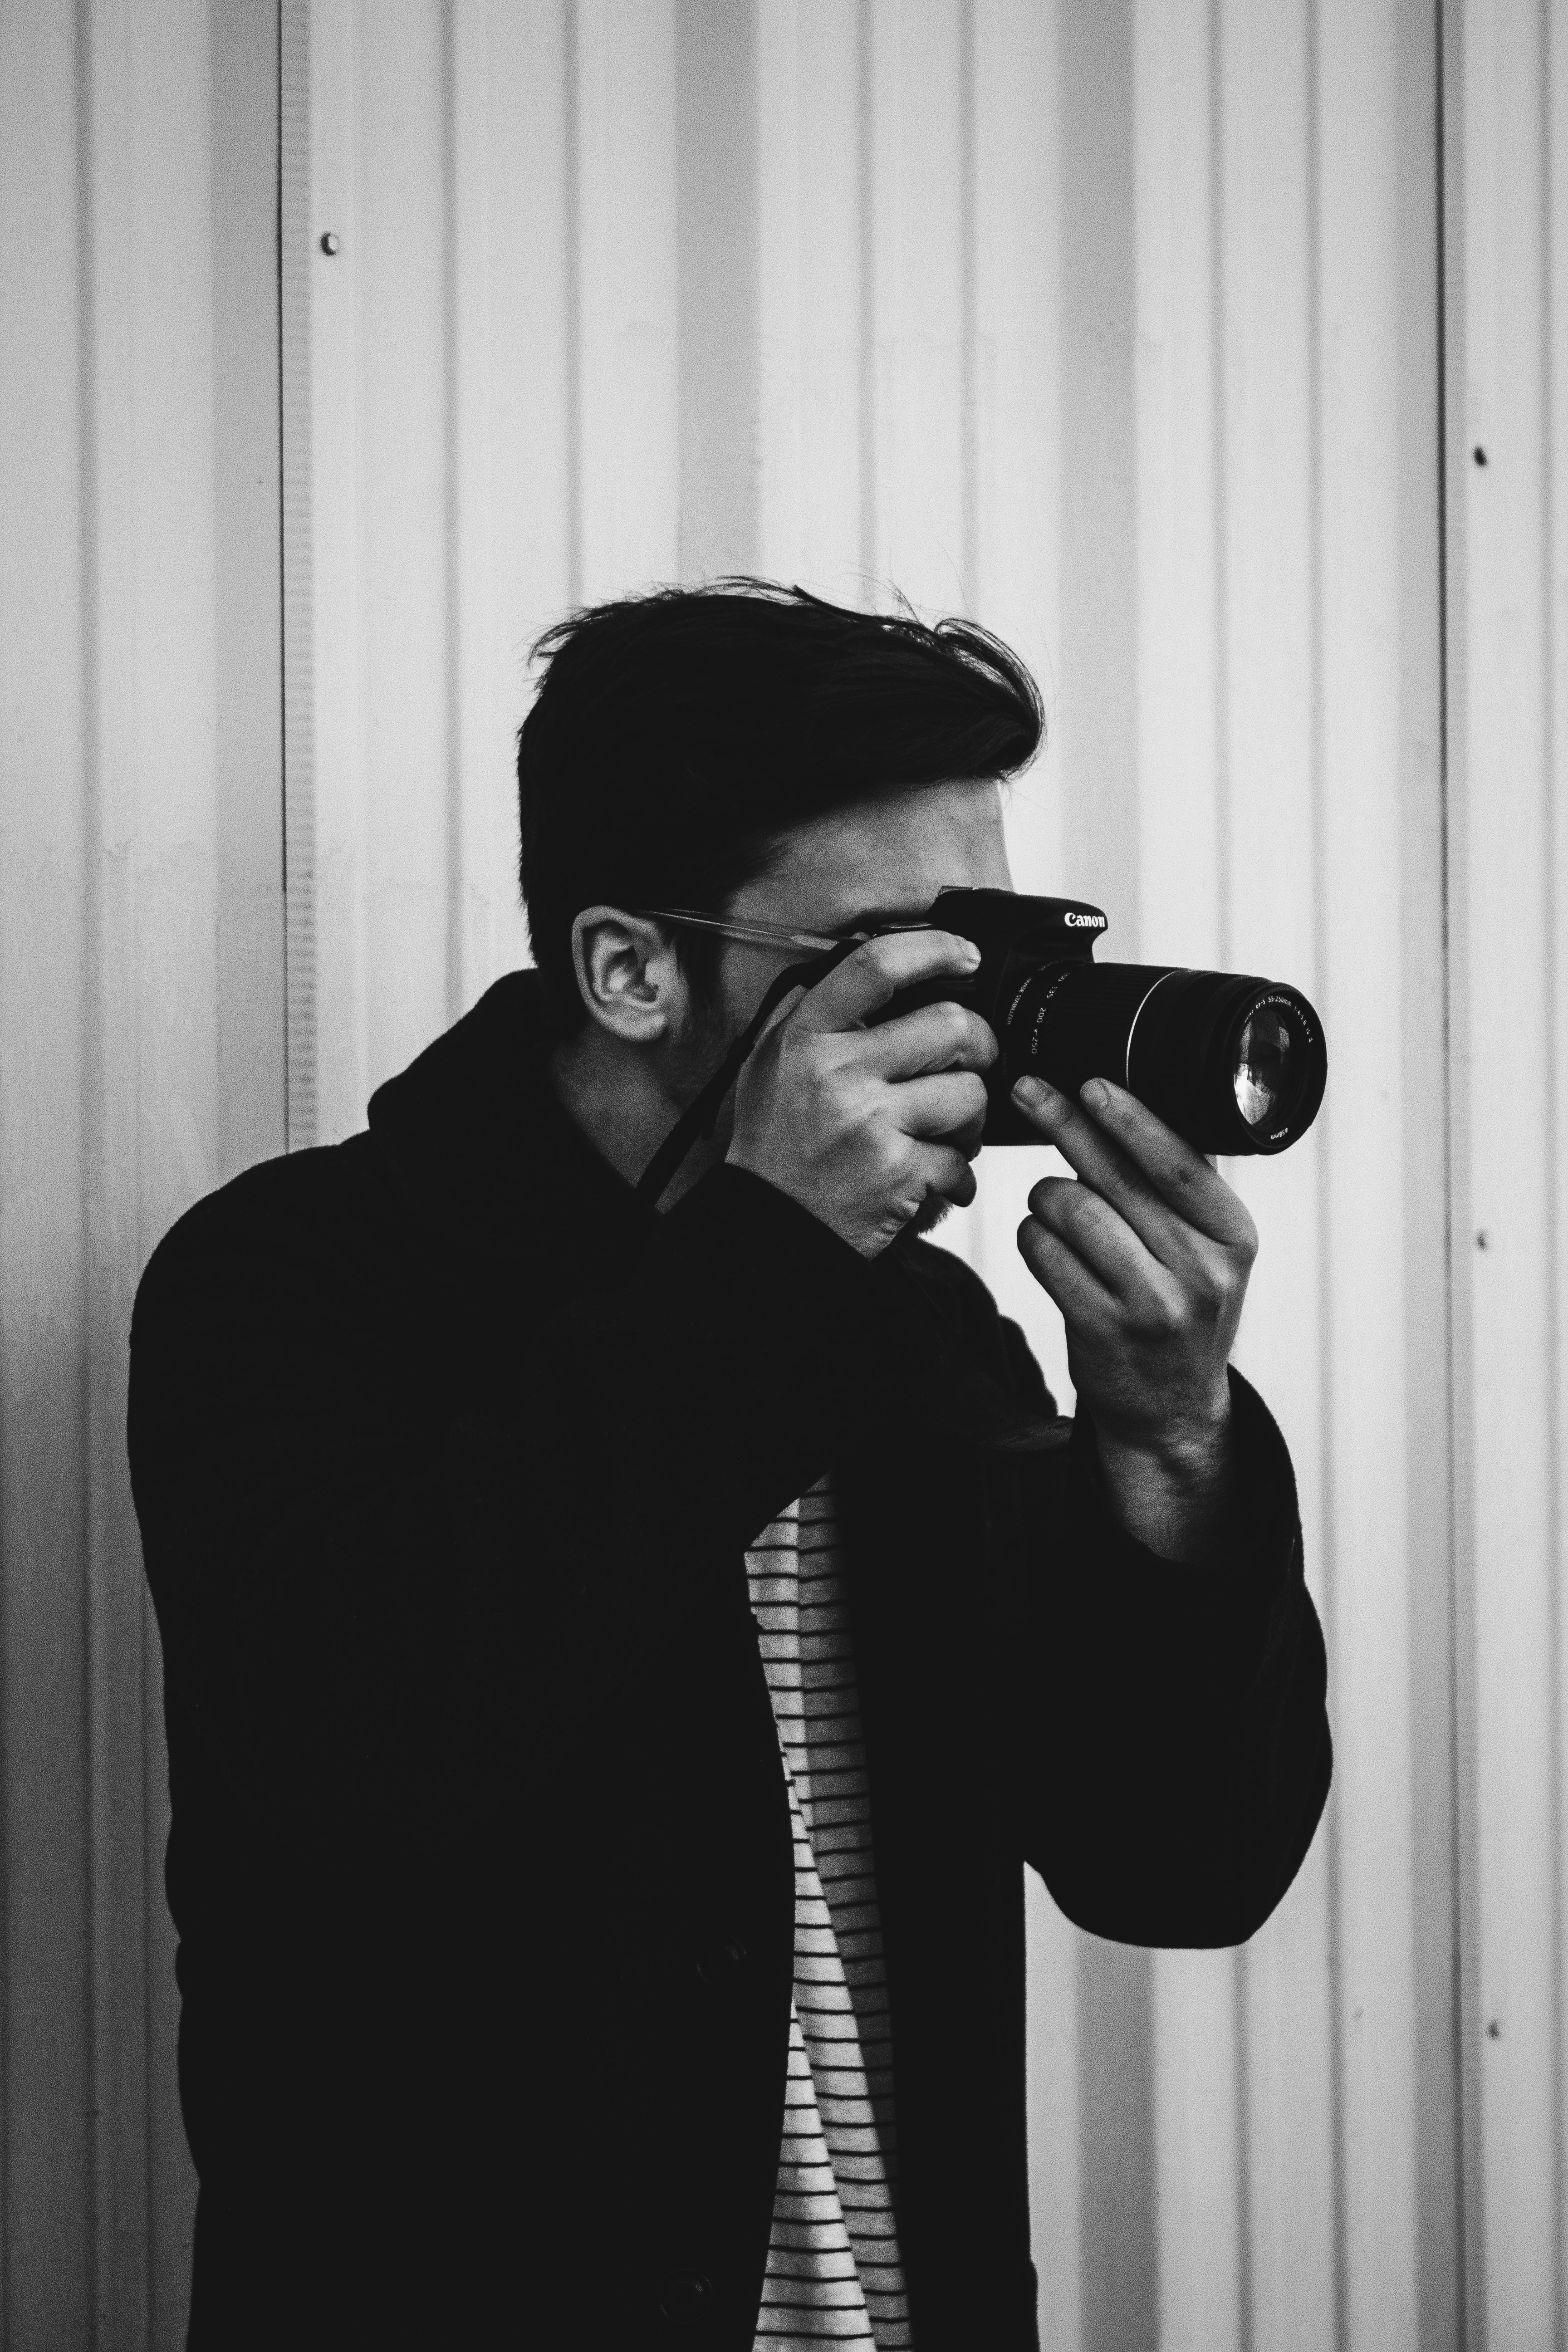 grayscale photograph of man holding DSLR camera while taking photo